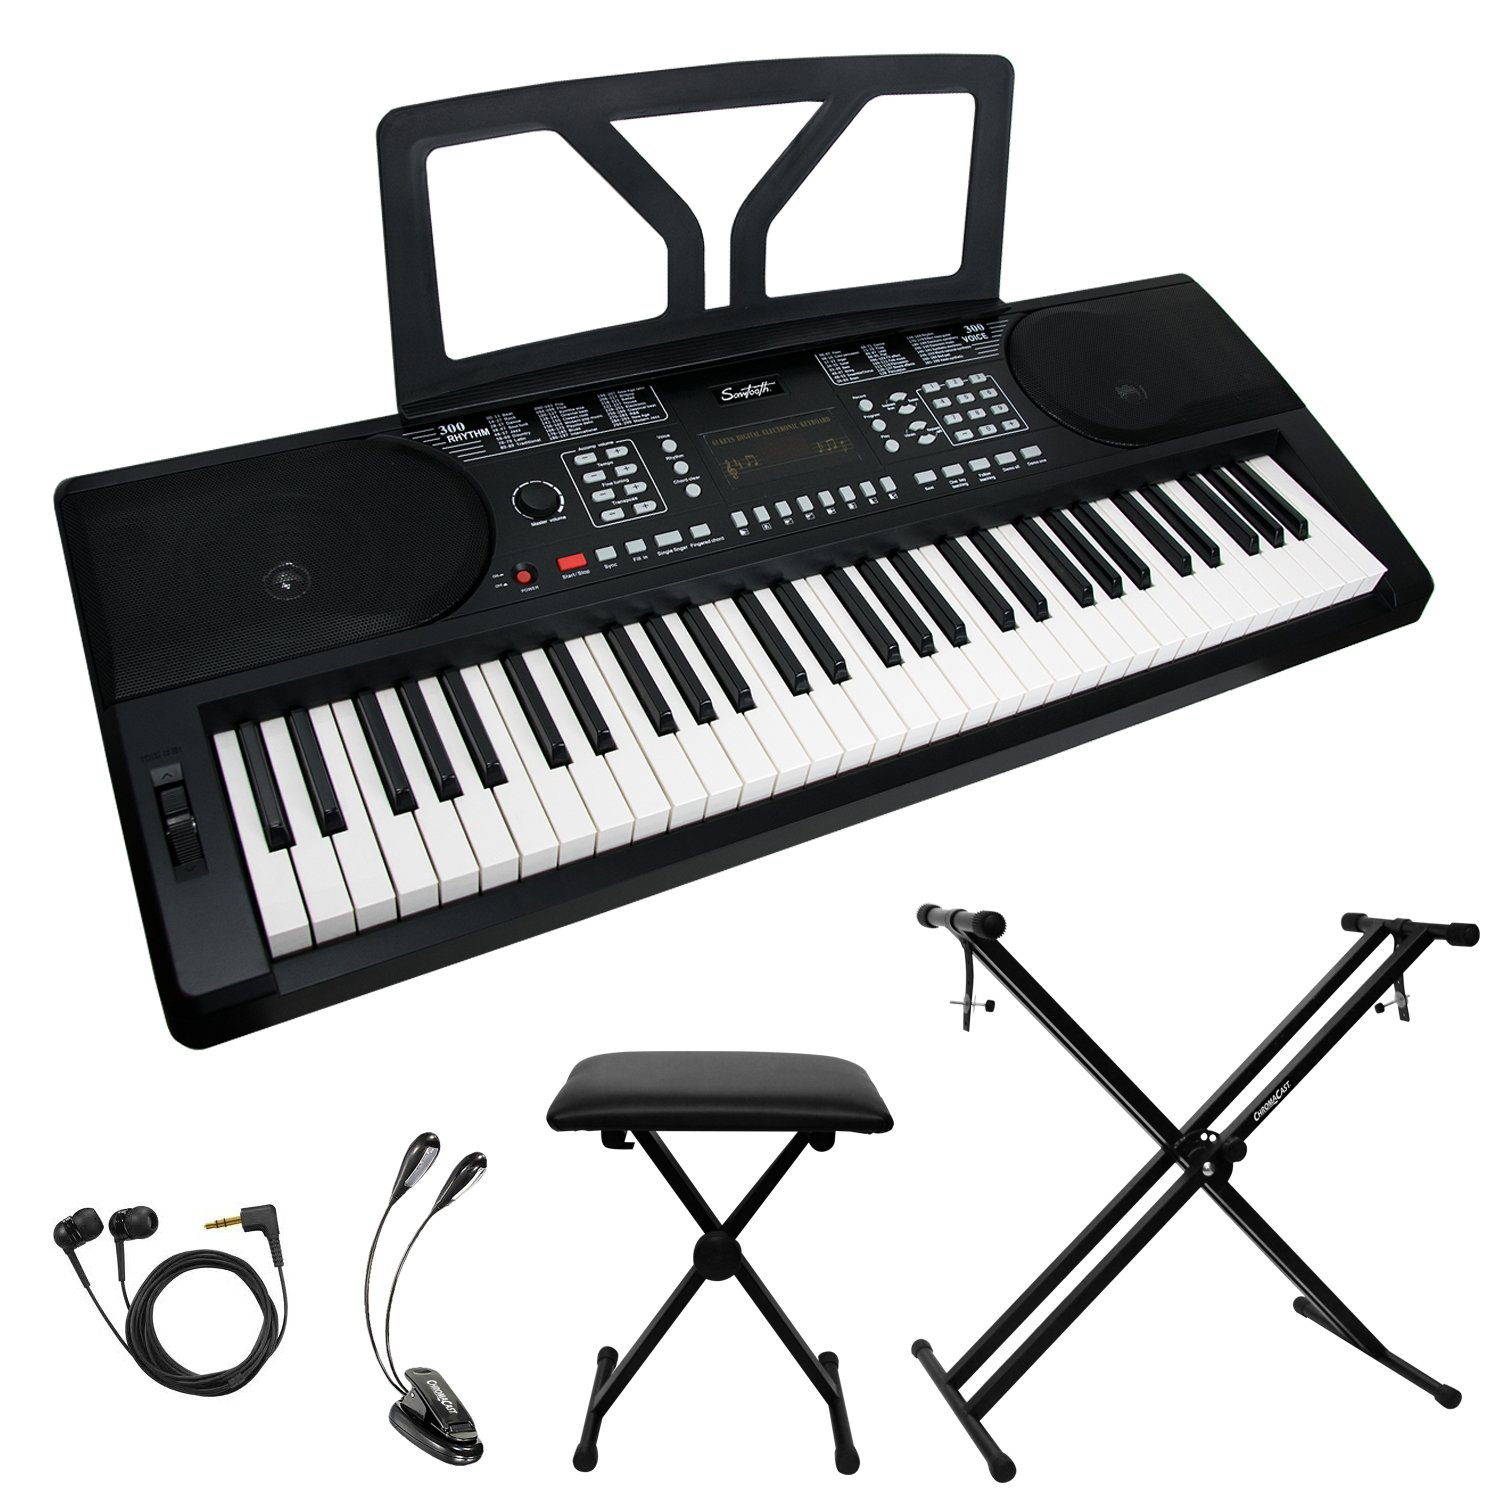 Sawtooth ST-PKB-61-KIT-1 61-Key Portable Keyboard with Accessories